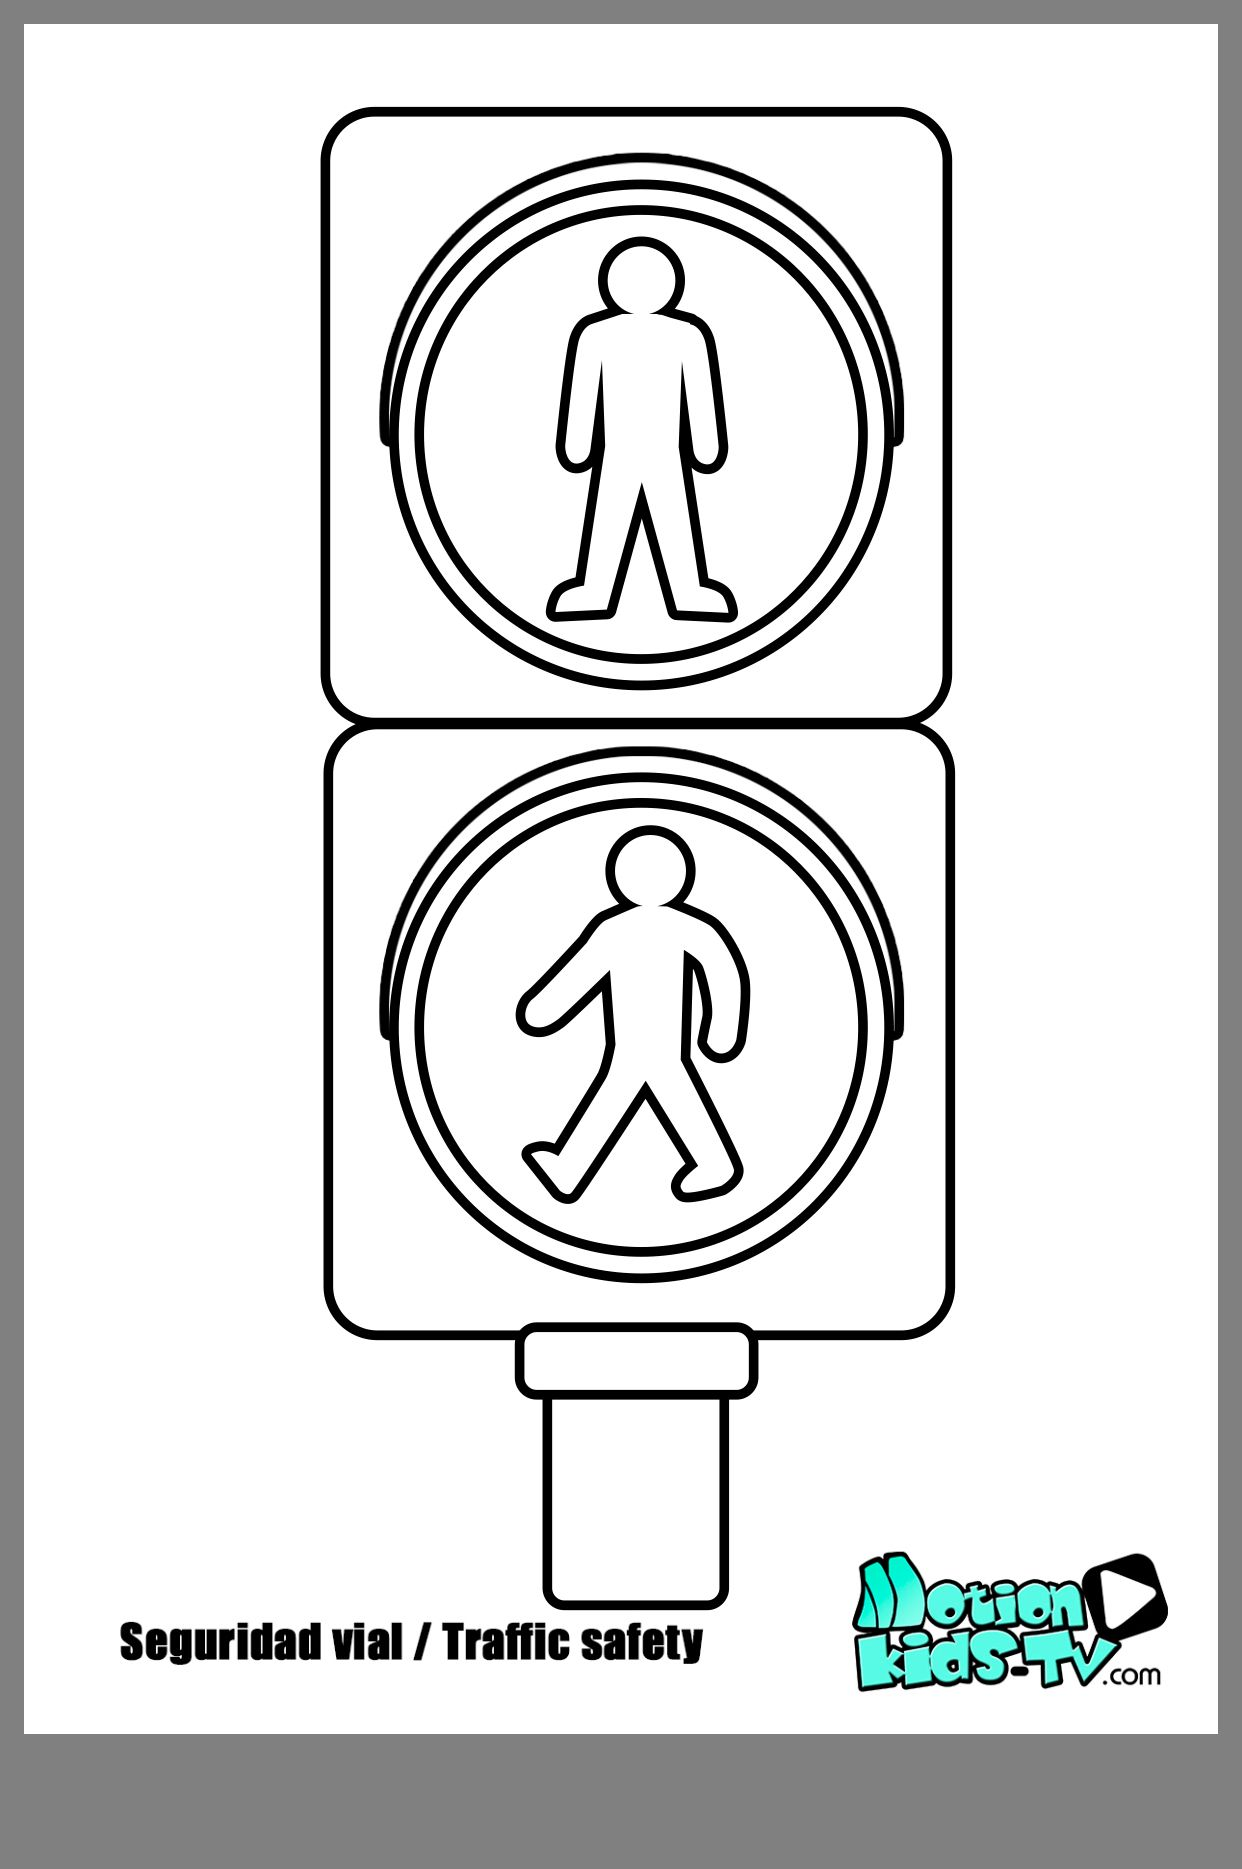 Pin By Els Dujardin On Doprava Safety Crafts Road Traffic Safety Traffic Signs